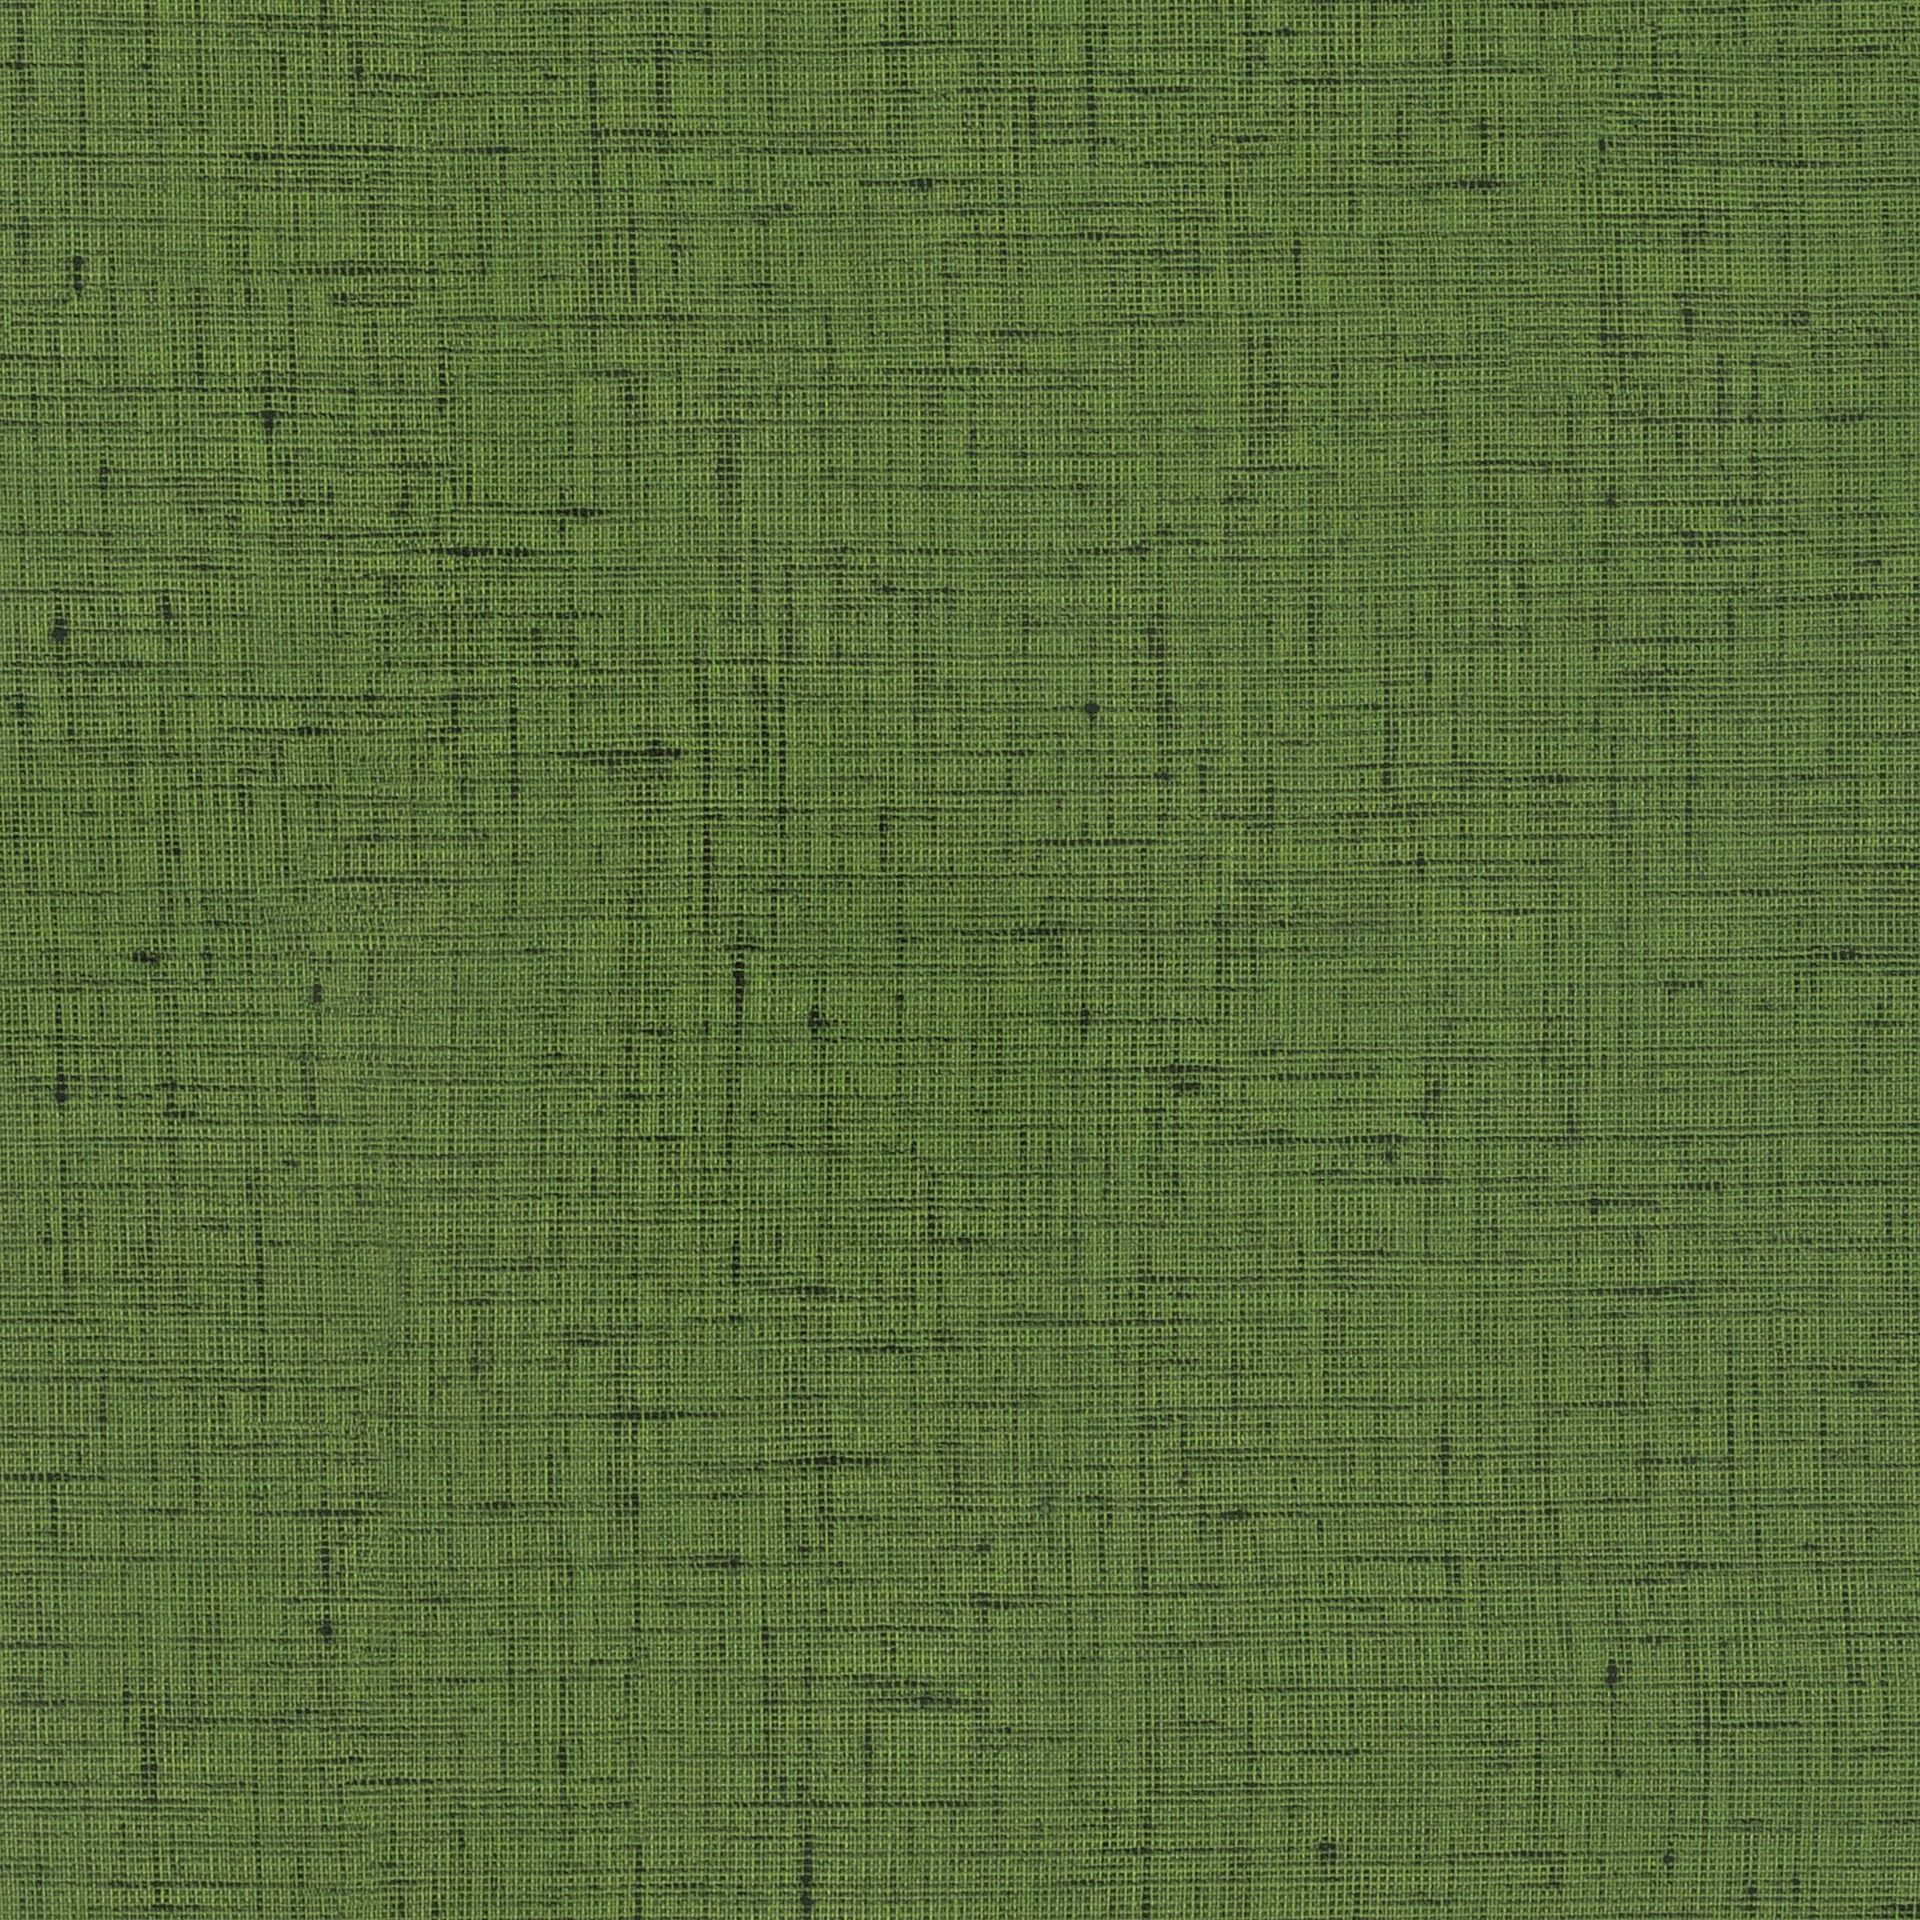 Formica Laminate Jonathan Adler Collection Green Lacquered Linen Laminate Kitchen Formica Laminate Formica Countertops